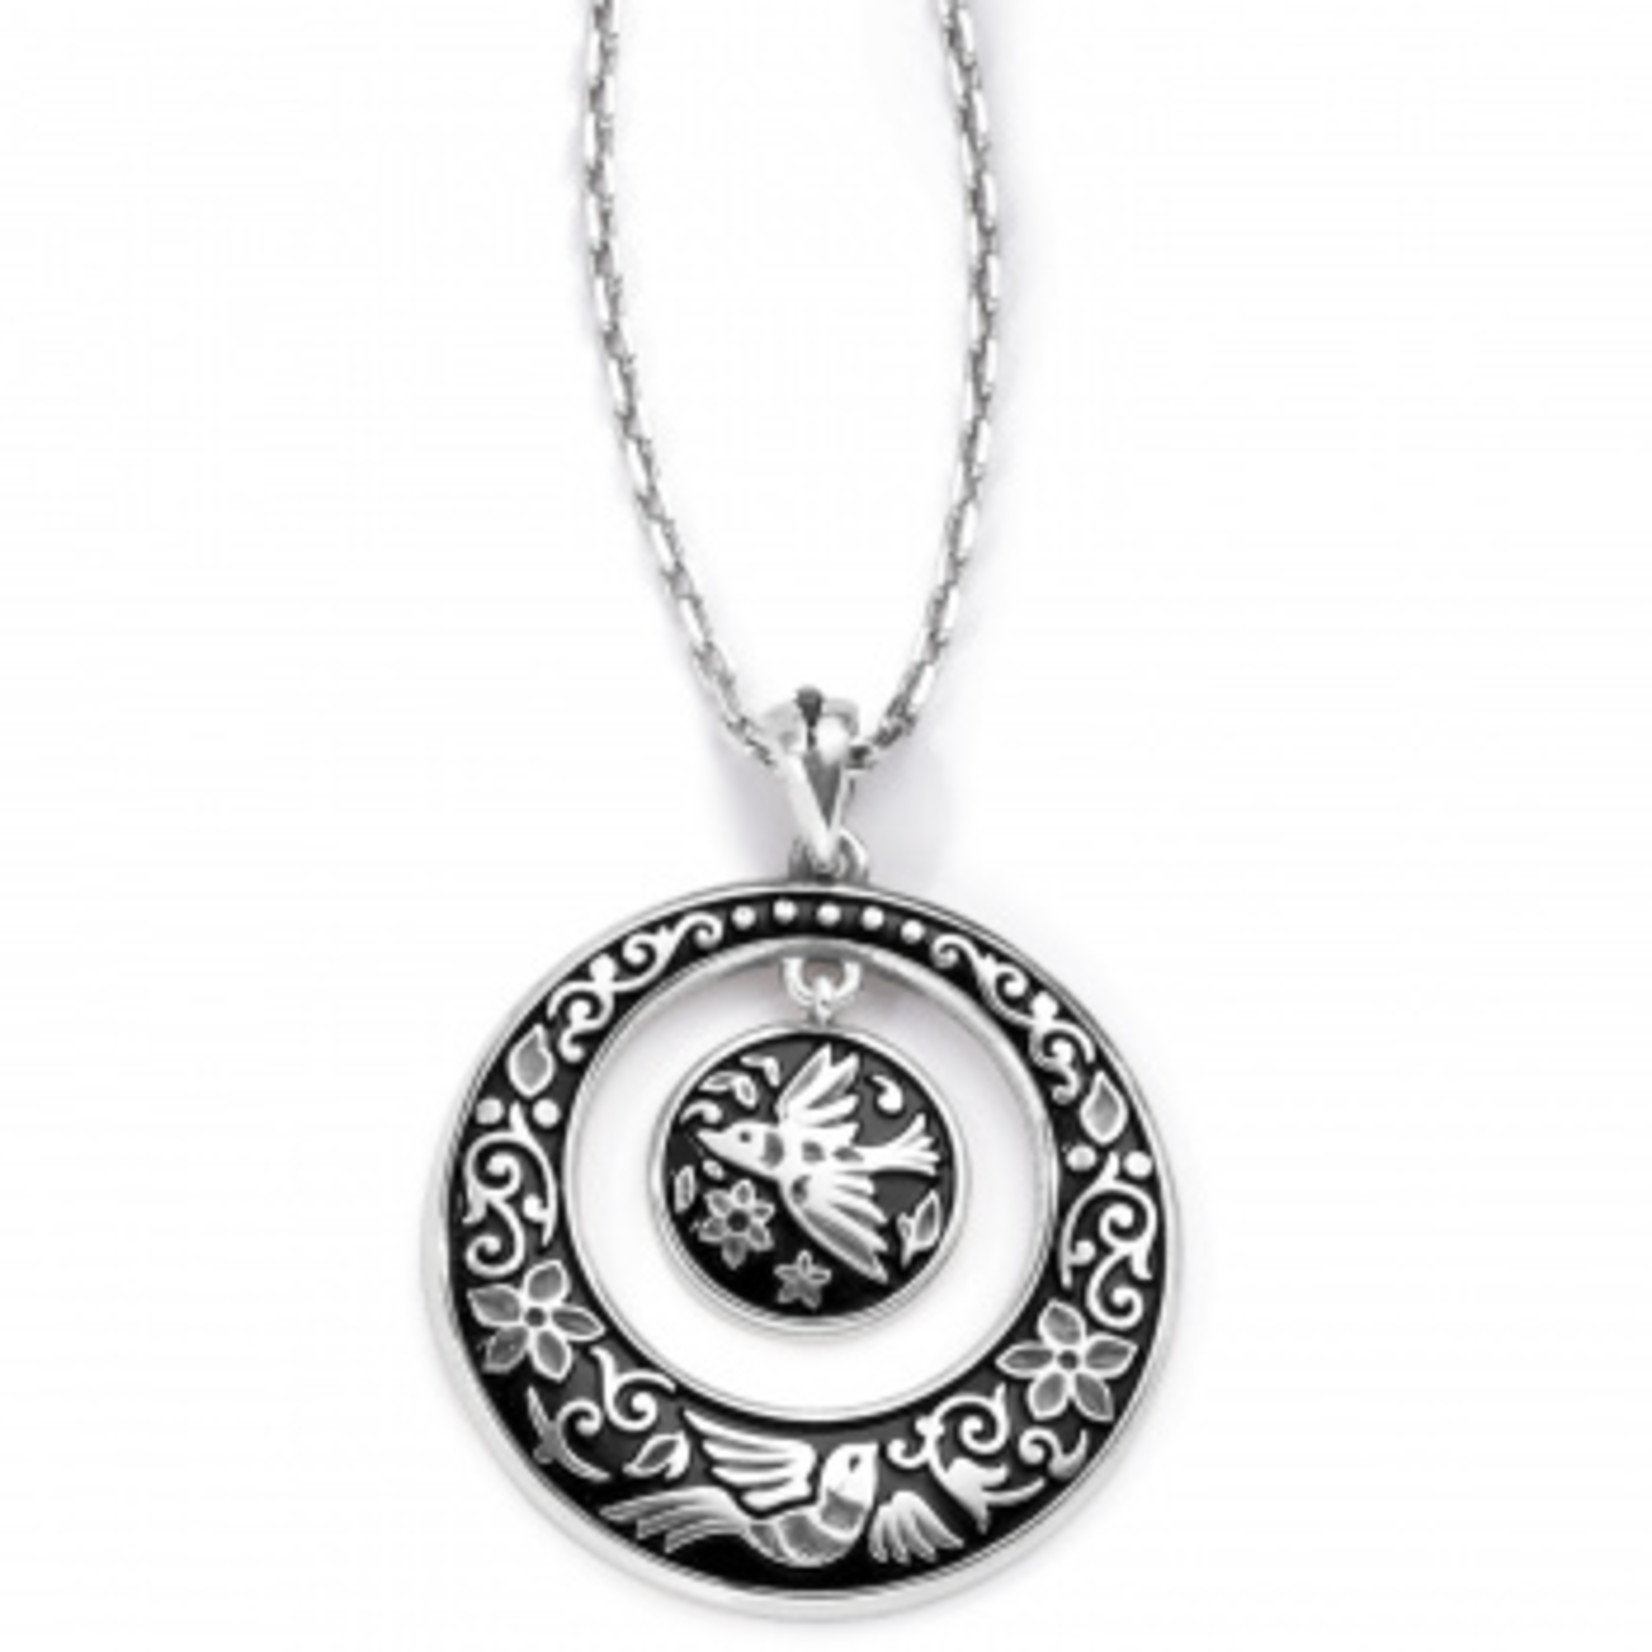 Brighton Moonlight Garden Pendant Necklace Silver OS